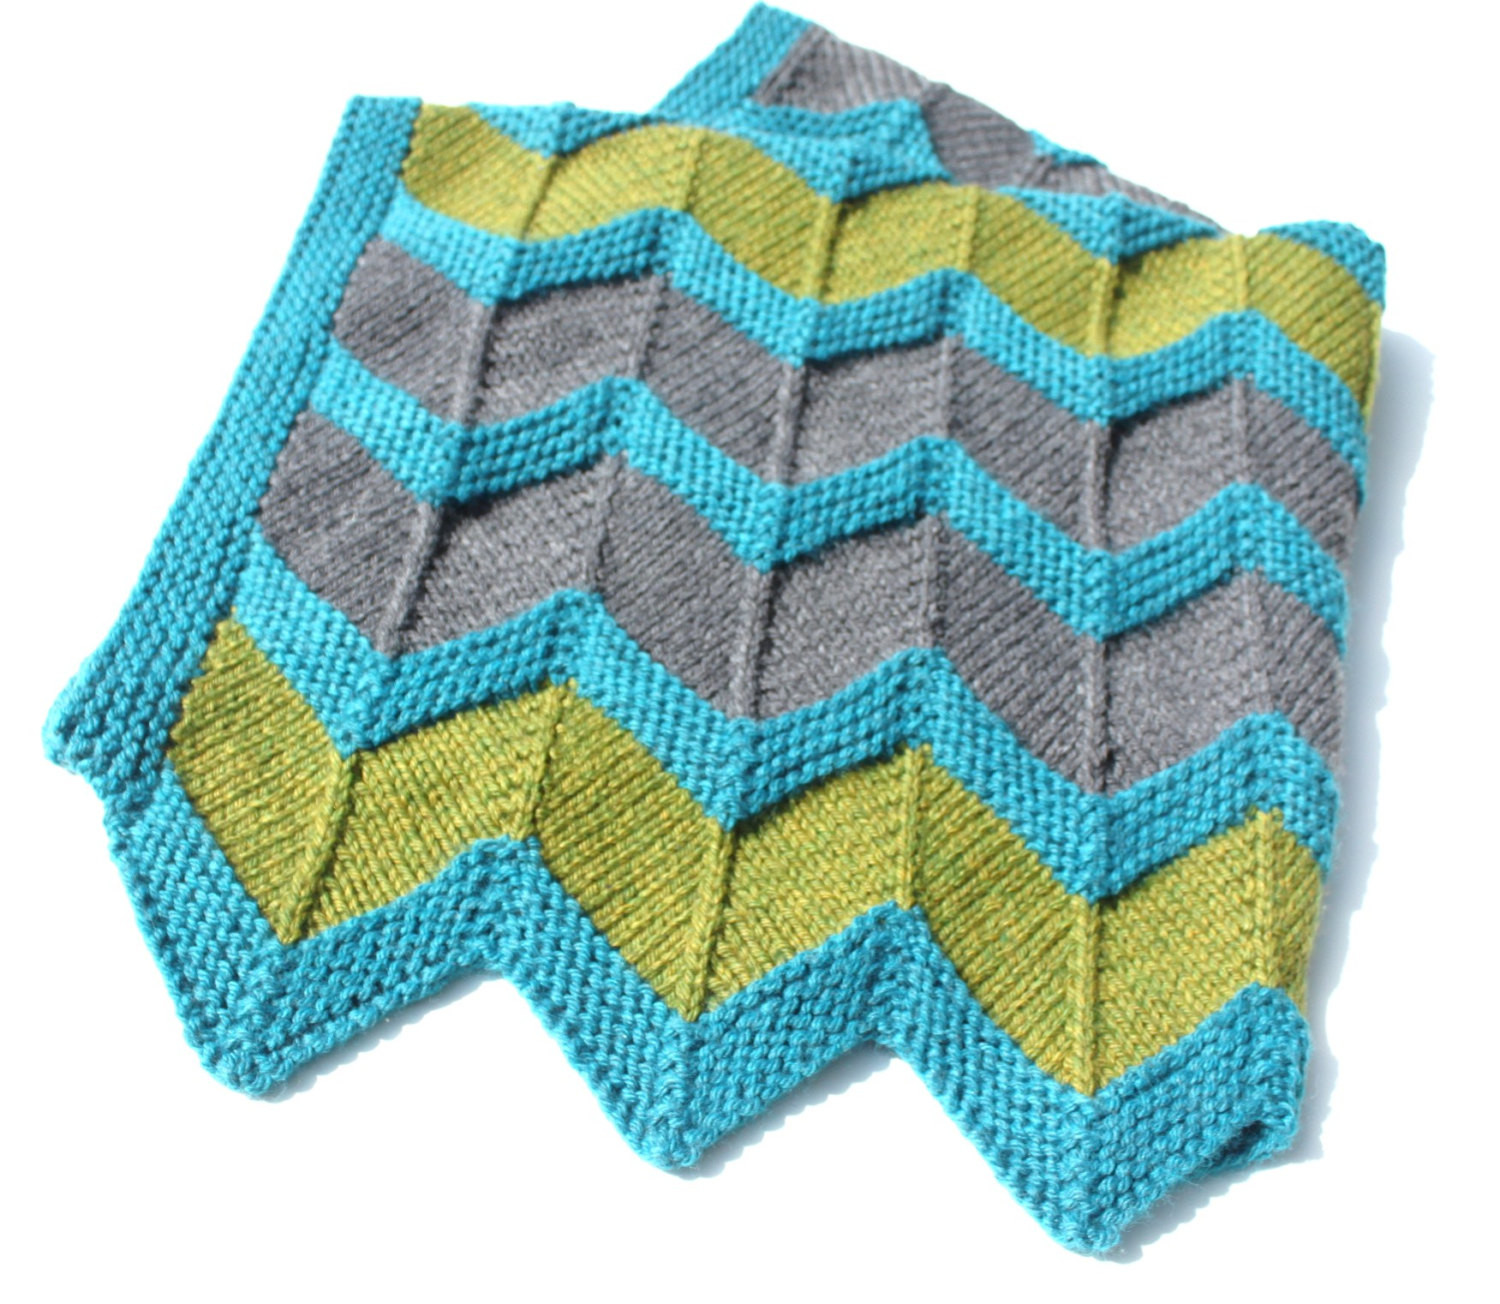 Chevron Baby Blanket Beautiful Zip Baby Blanket Pattern Chevron Knit Baby Blanket Of Attractive 49 Pics Chevron Baby Blanket